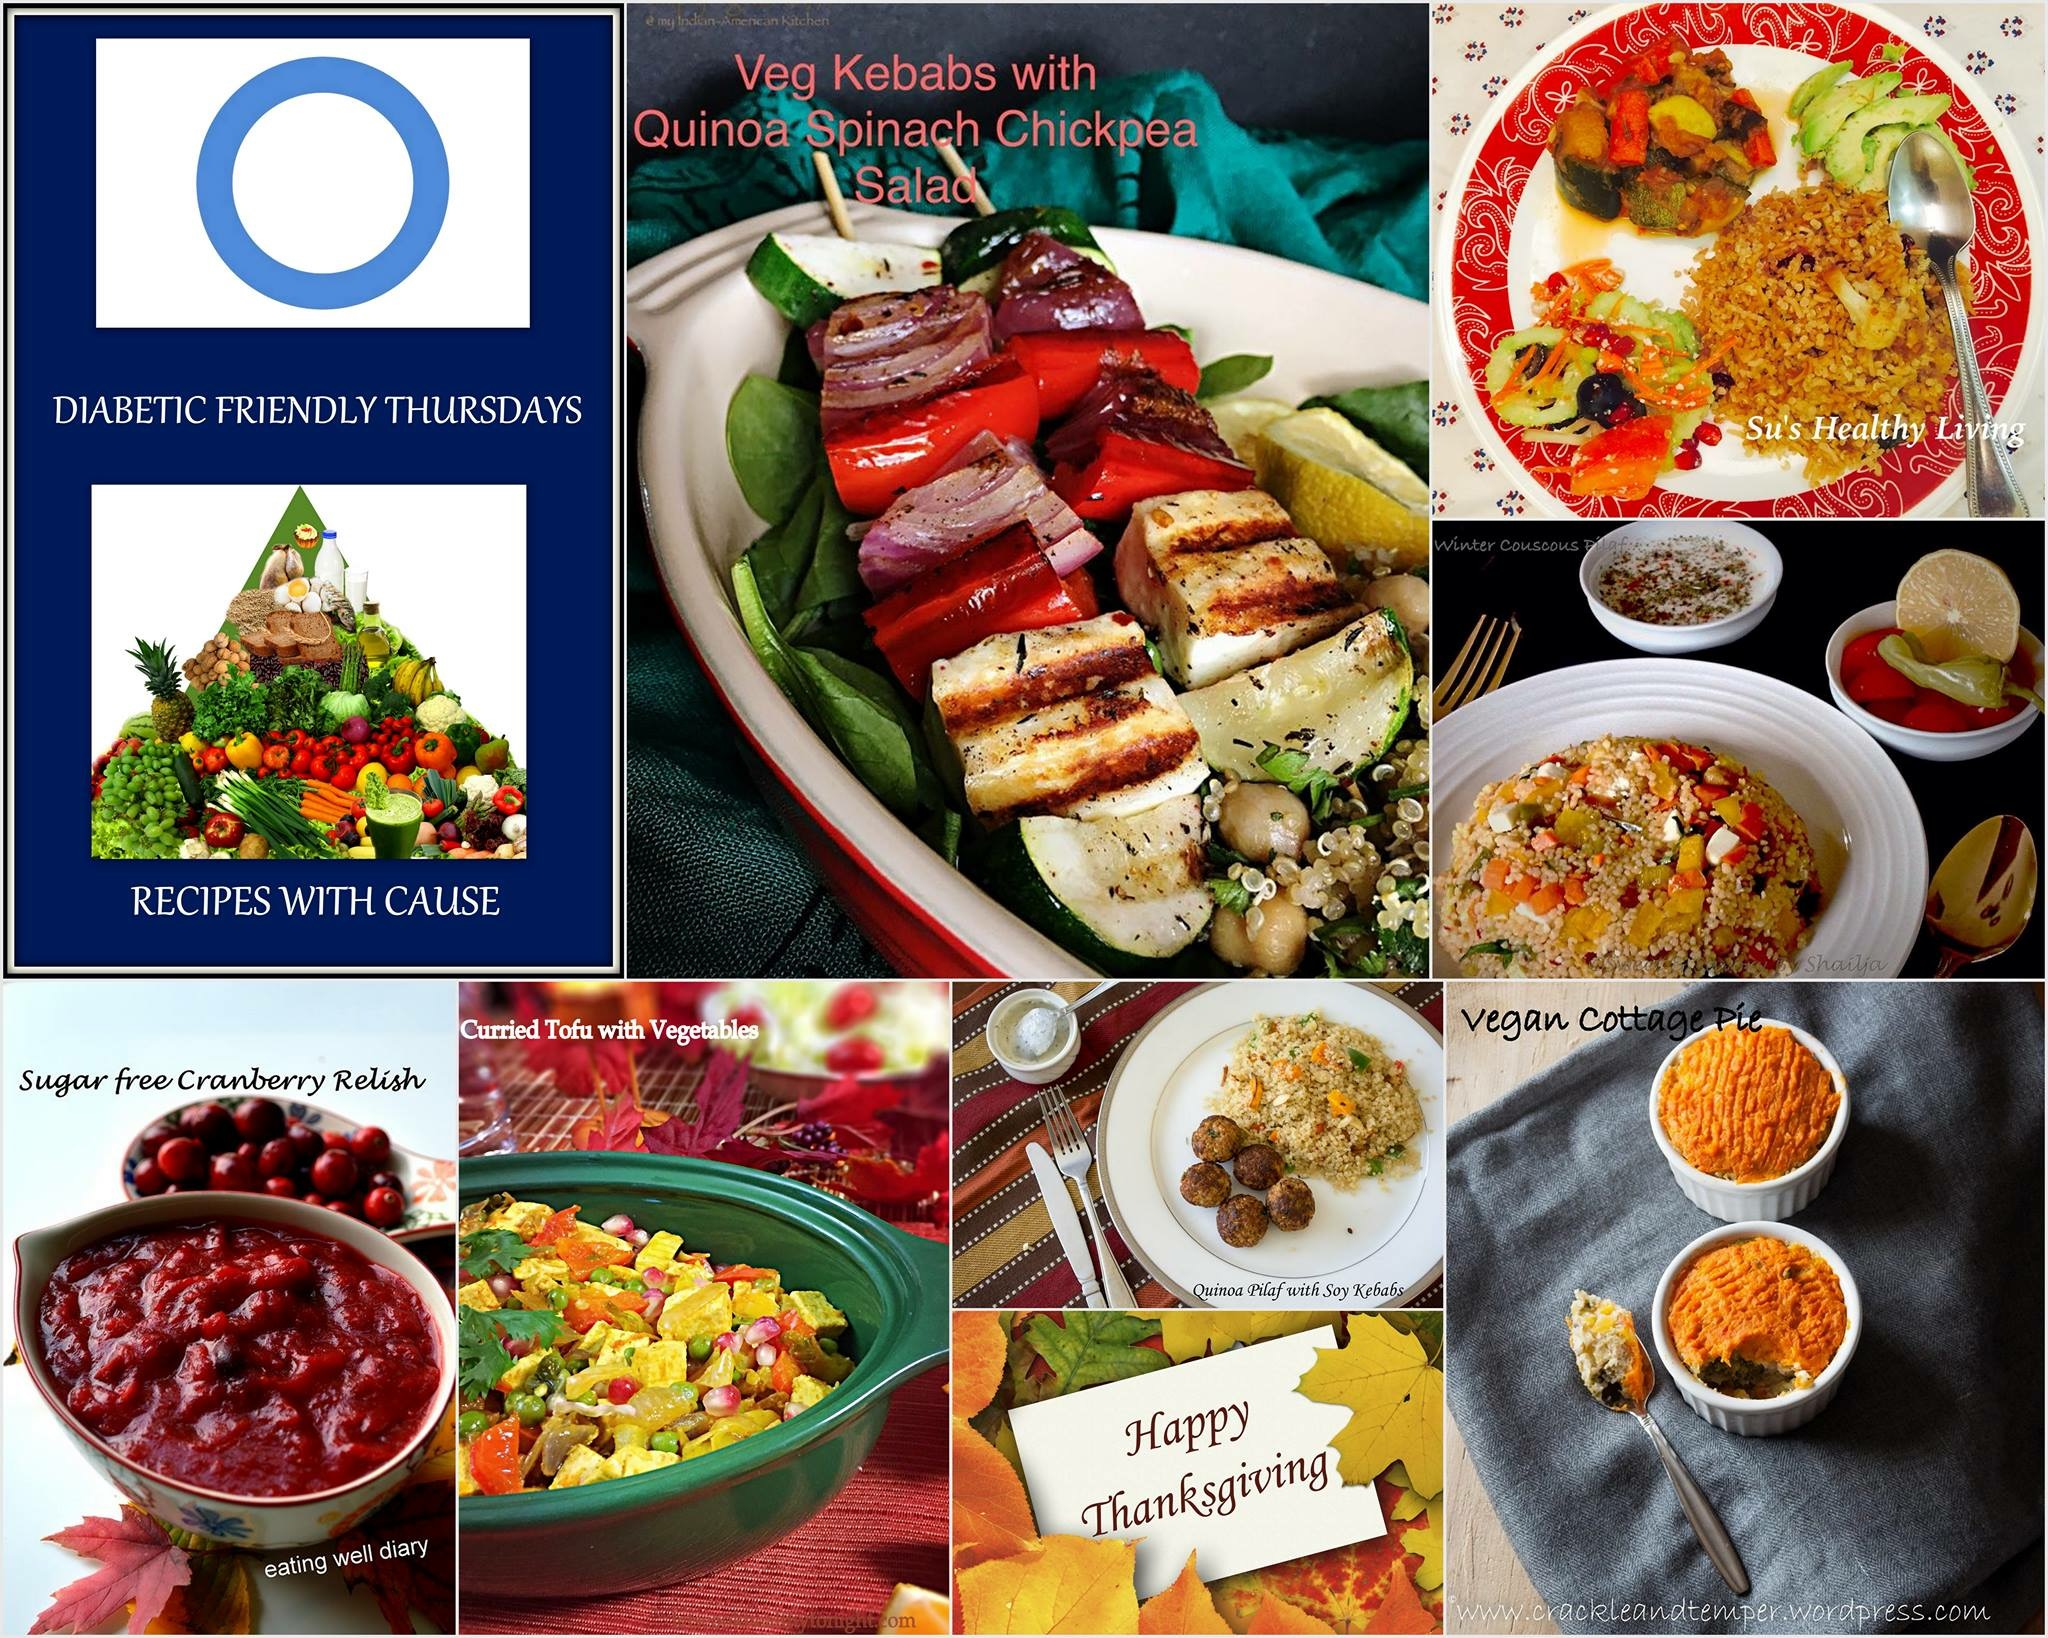 Diabetes friendly thursdays healthy recipes archives creating recipes with a cause i am a proud dft blogger to learn about dft read this link view more dft recipes click here forumfinder Choice Image